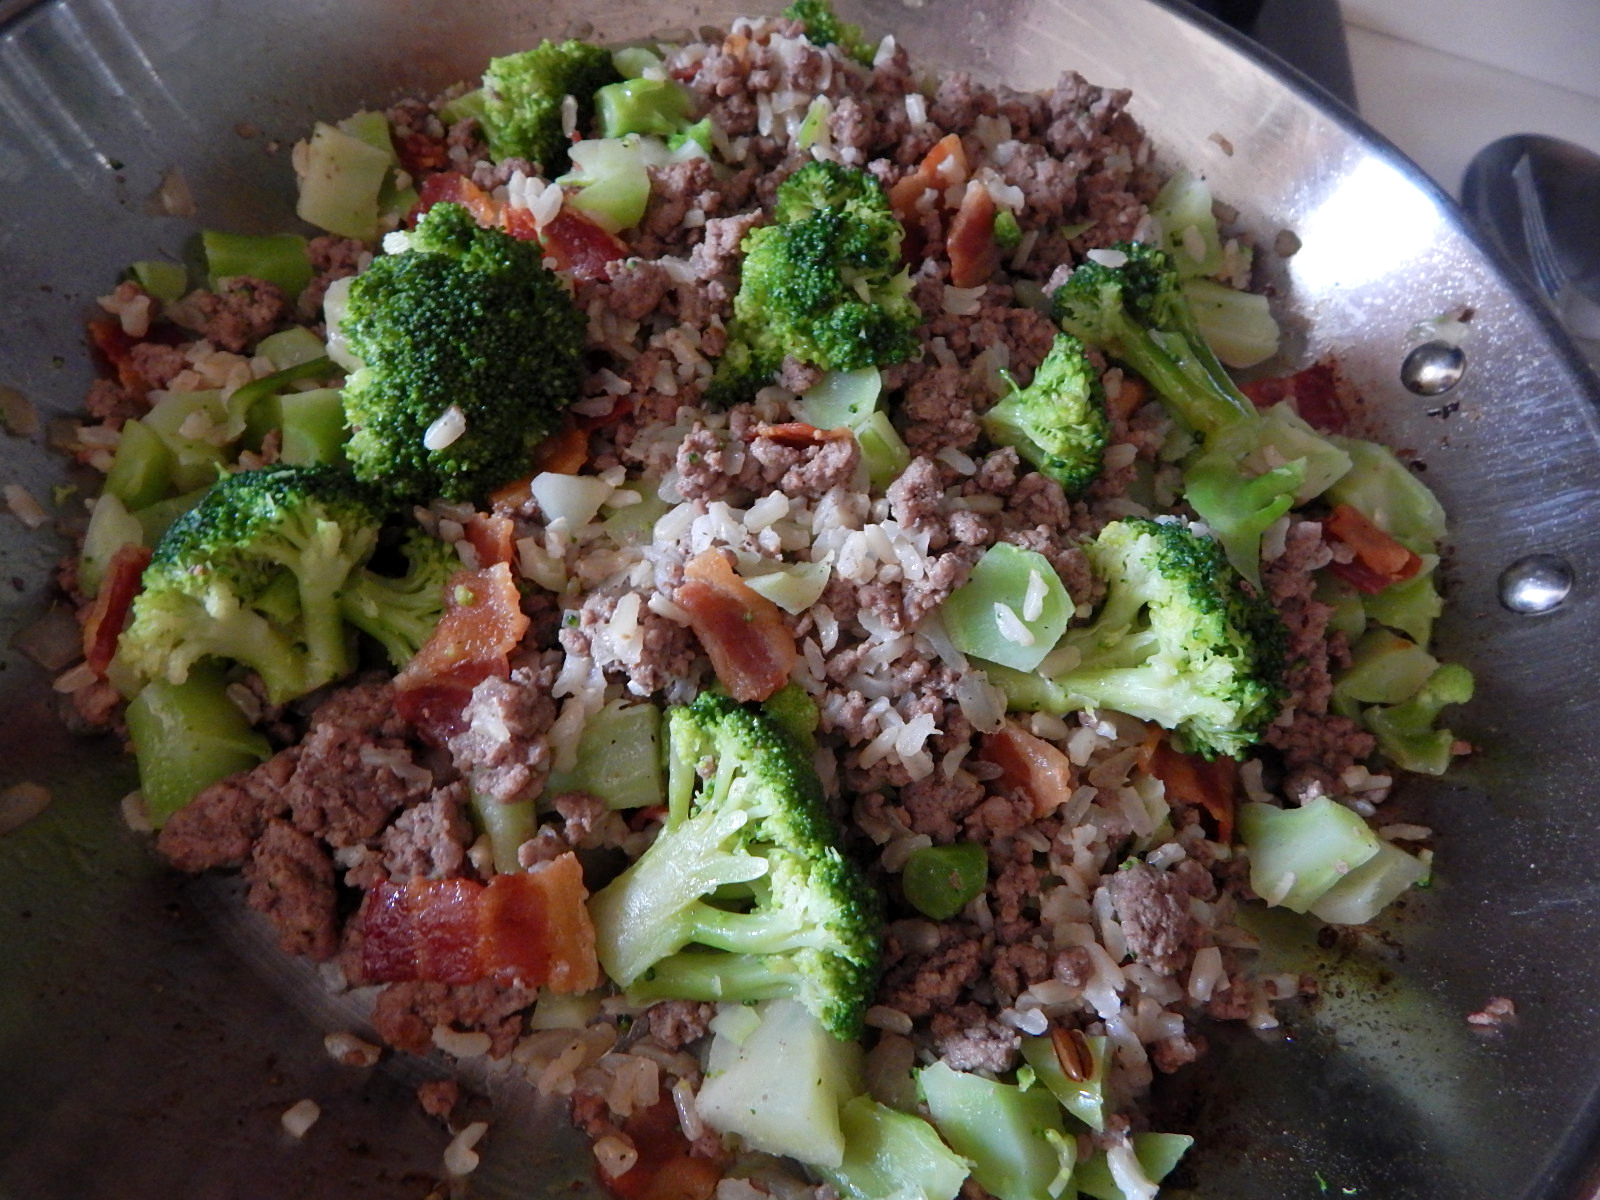 Bacon Broccoli Burger Brown Rice 2.JPG